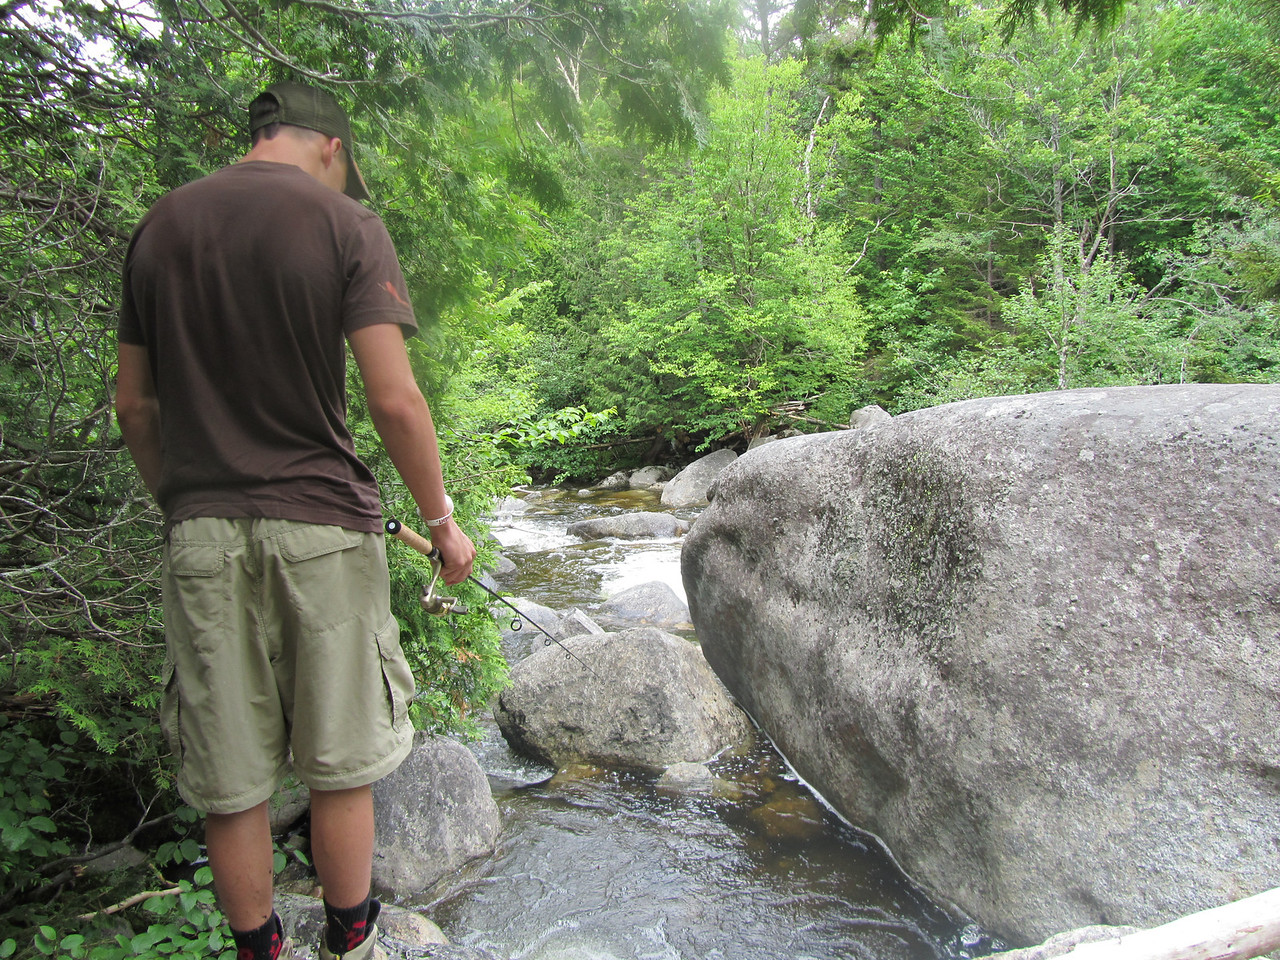 Brad seeking the elusive native brook trout about a 1/4 mile below Marcy dam on Marcy creek.